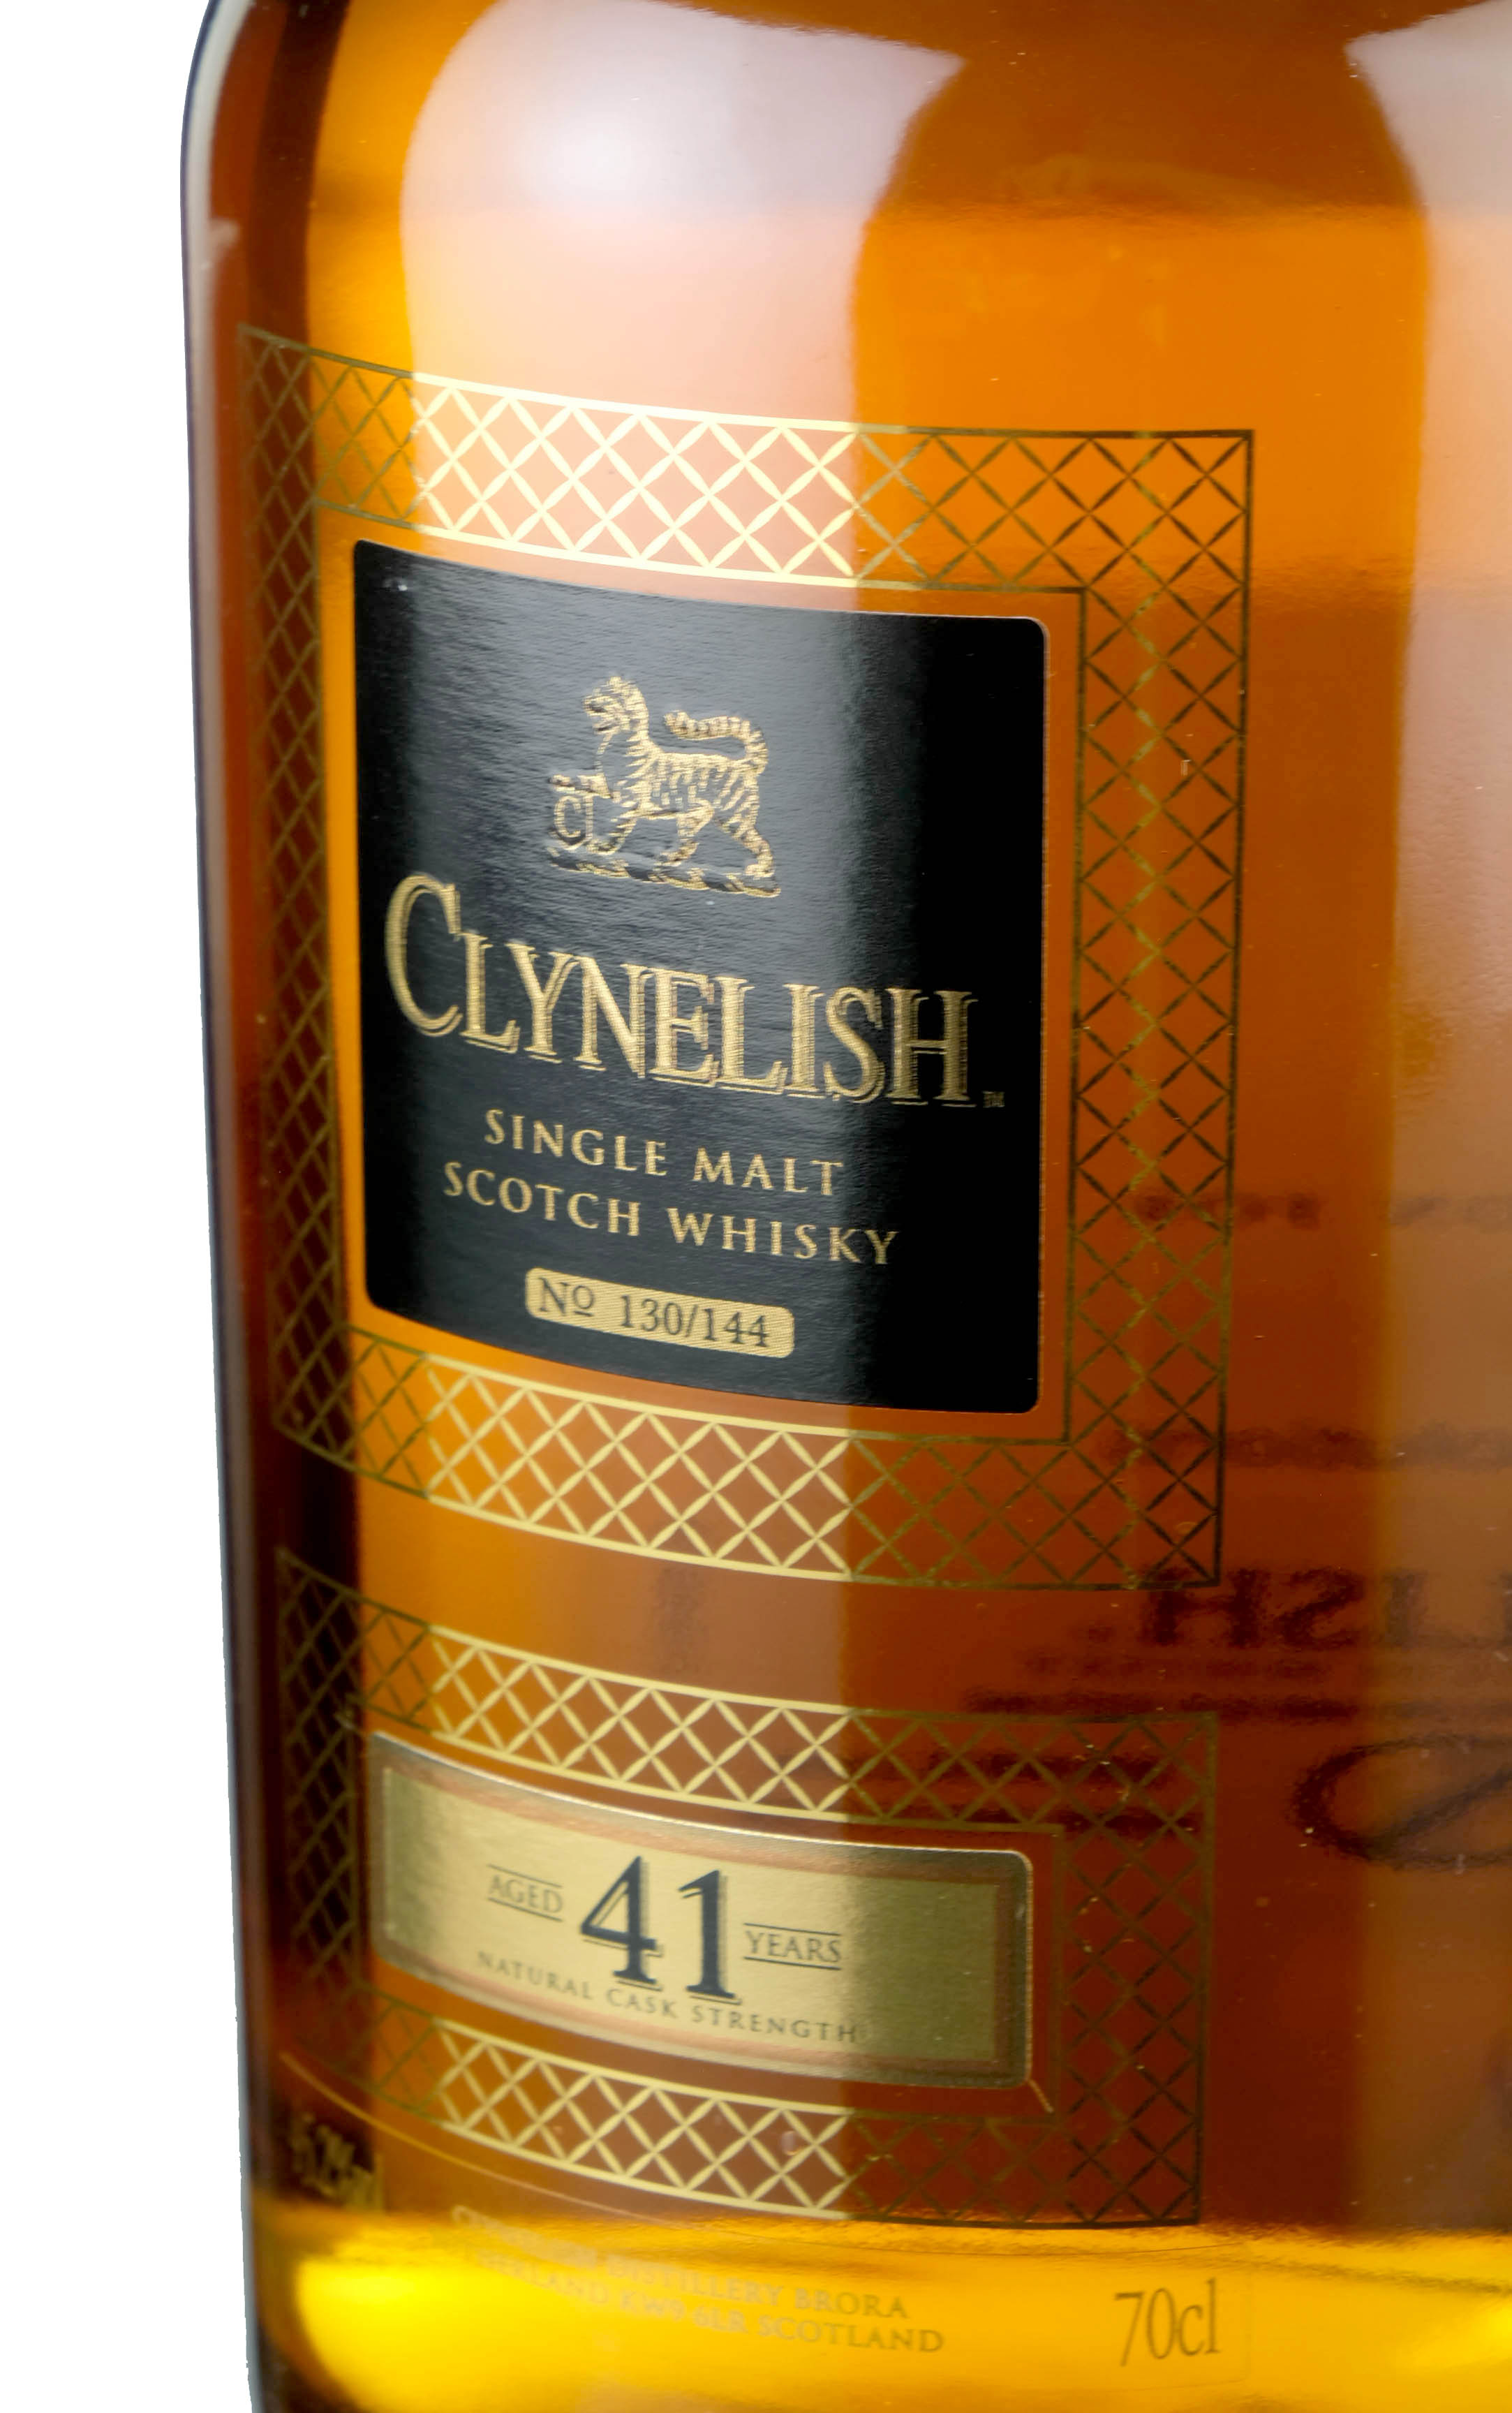 clynelish 41 year old - single cask - 144 bottles